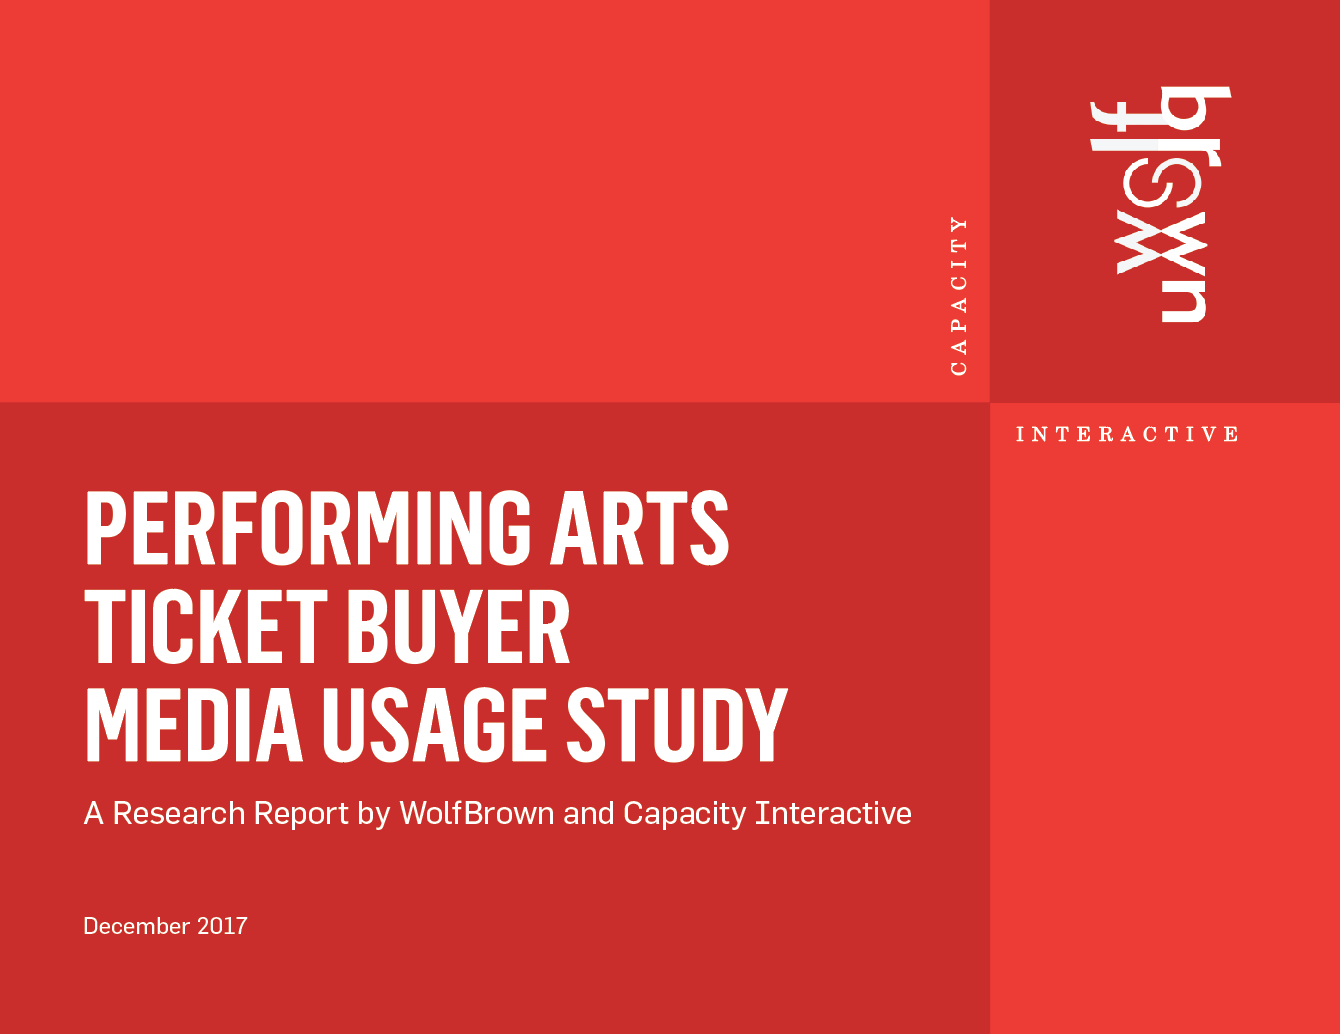 Performing Arts Ticket Buyer Media Usage Study